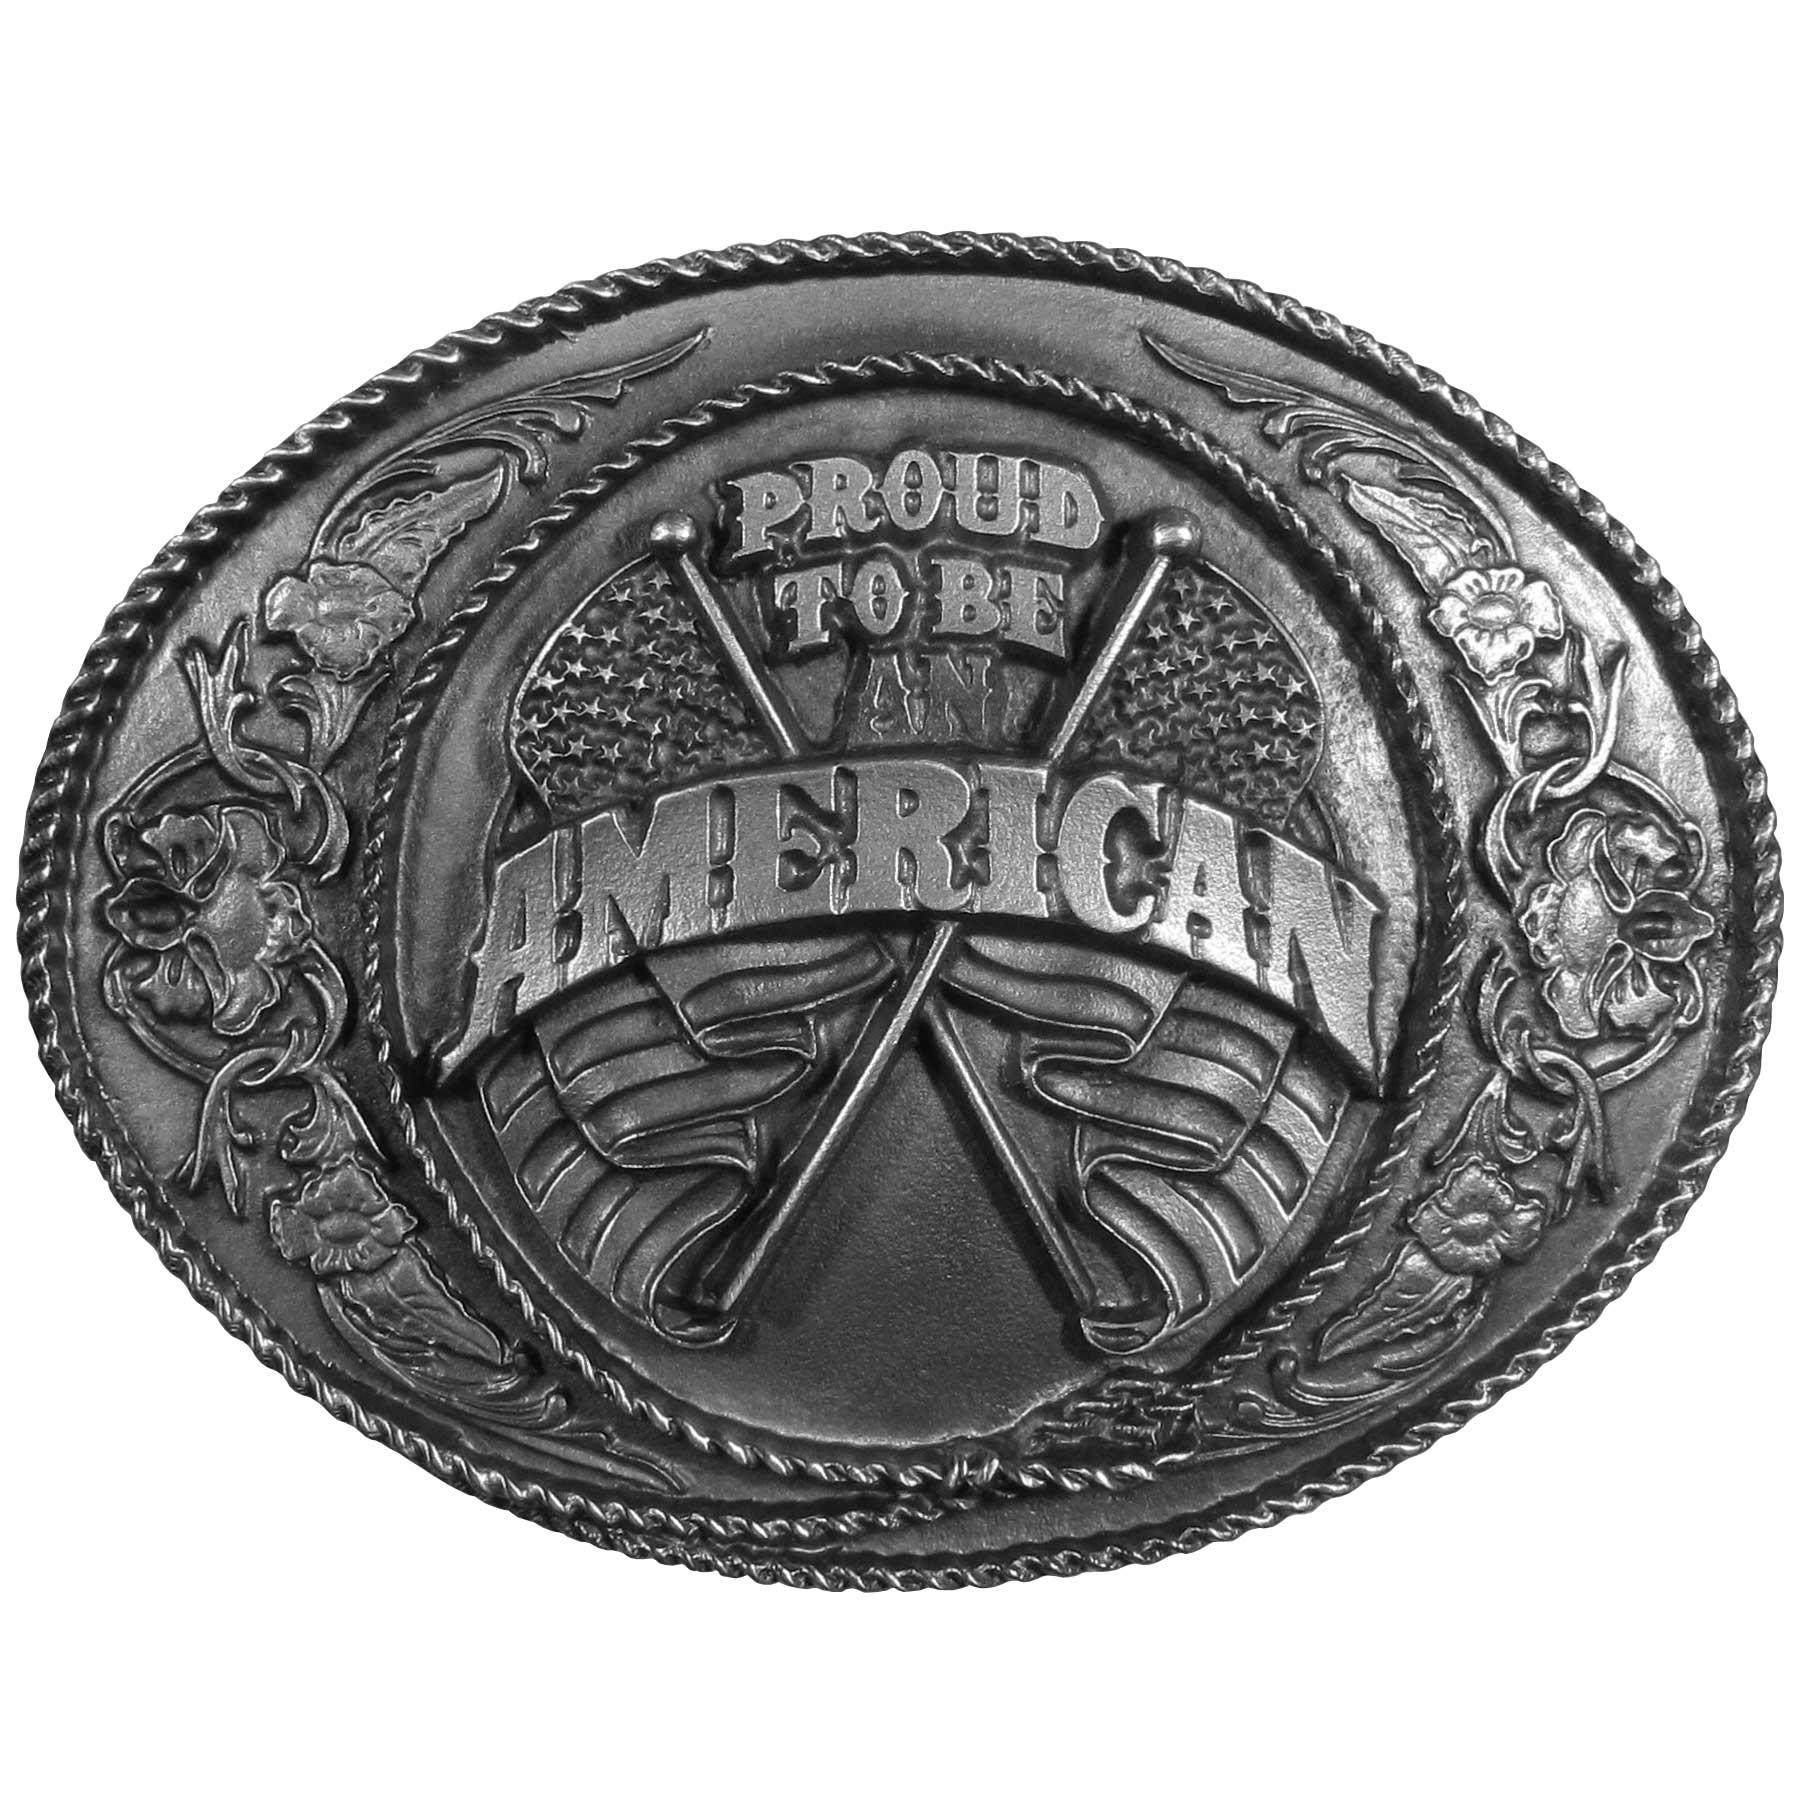 "Proud to be an American Antiqued Belt Buckle - ""Are you proud to be an American?  This belt buckle is for you!  """"Proud to be an American"""" is boldly written across the front with two American flags behind it and surrounded by rope, flowers and Western design.  This exquisitely carved buckle is made of fully cast metal with a standard bale that fits up to 2"""" belts."""